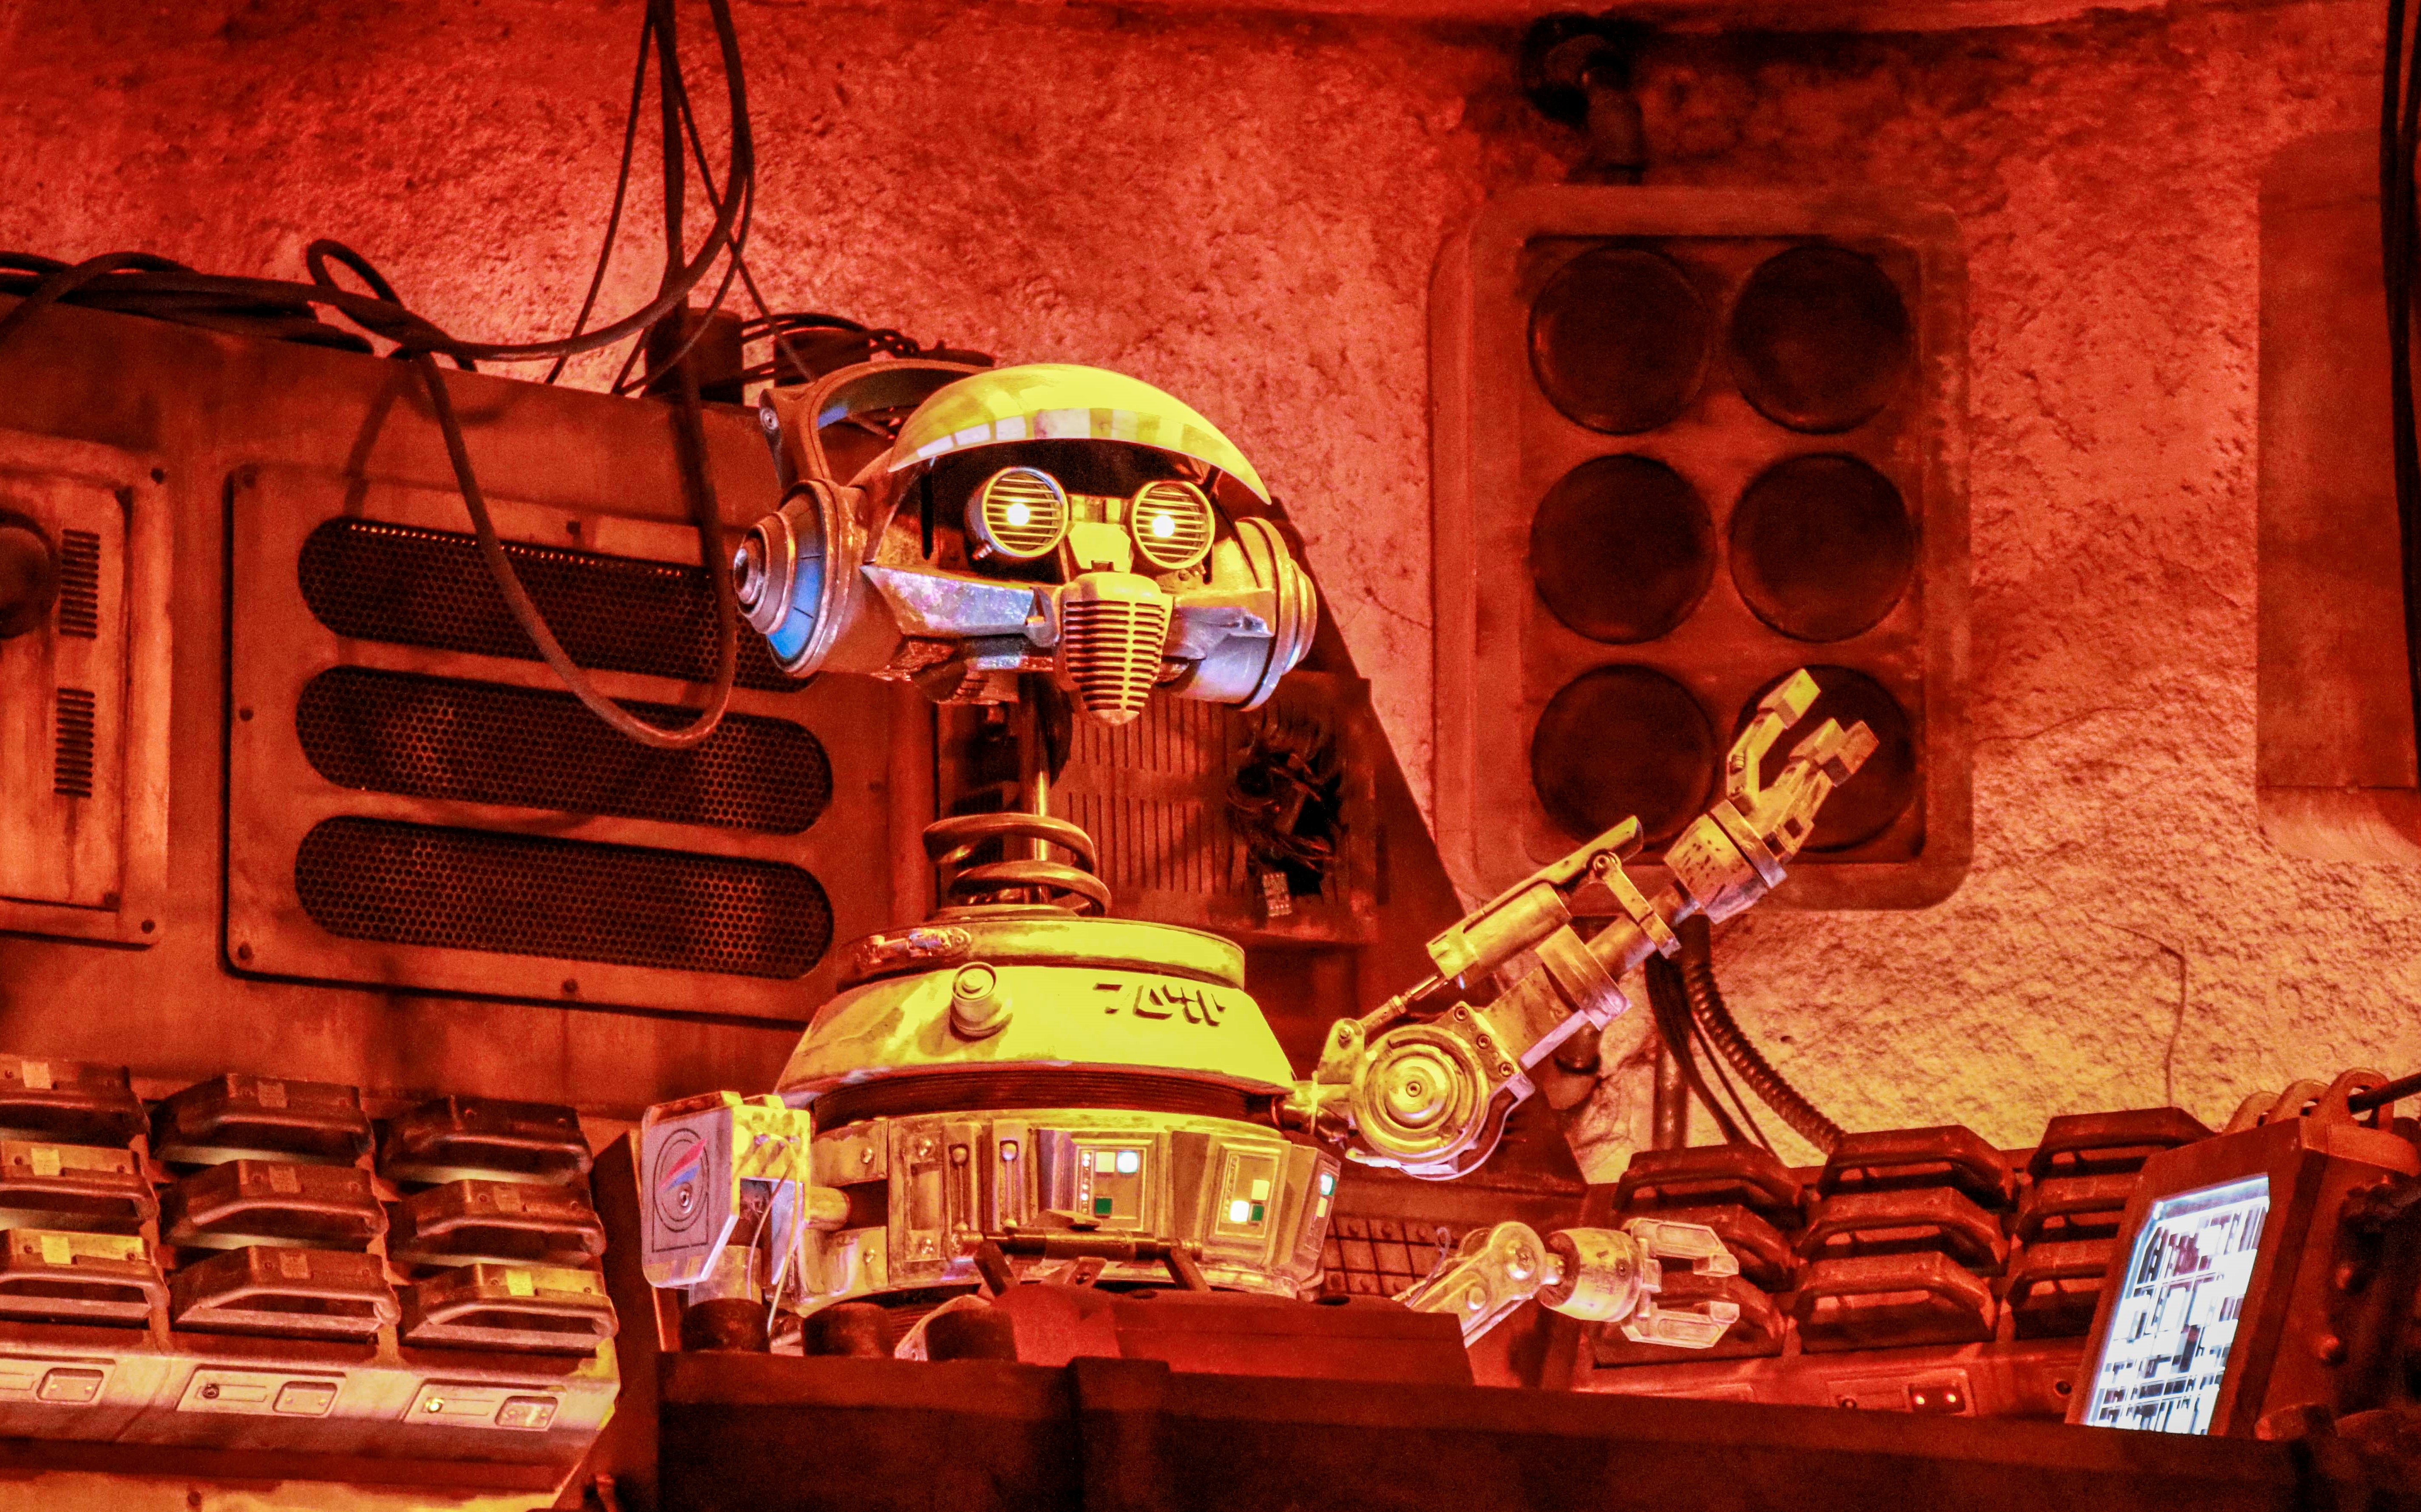 DJ R-3X is keeping that intergalactic funk going all night long!